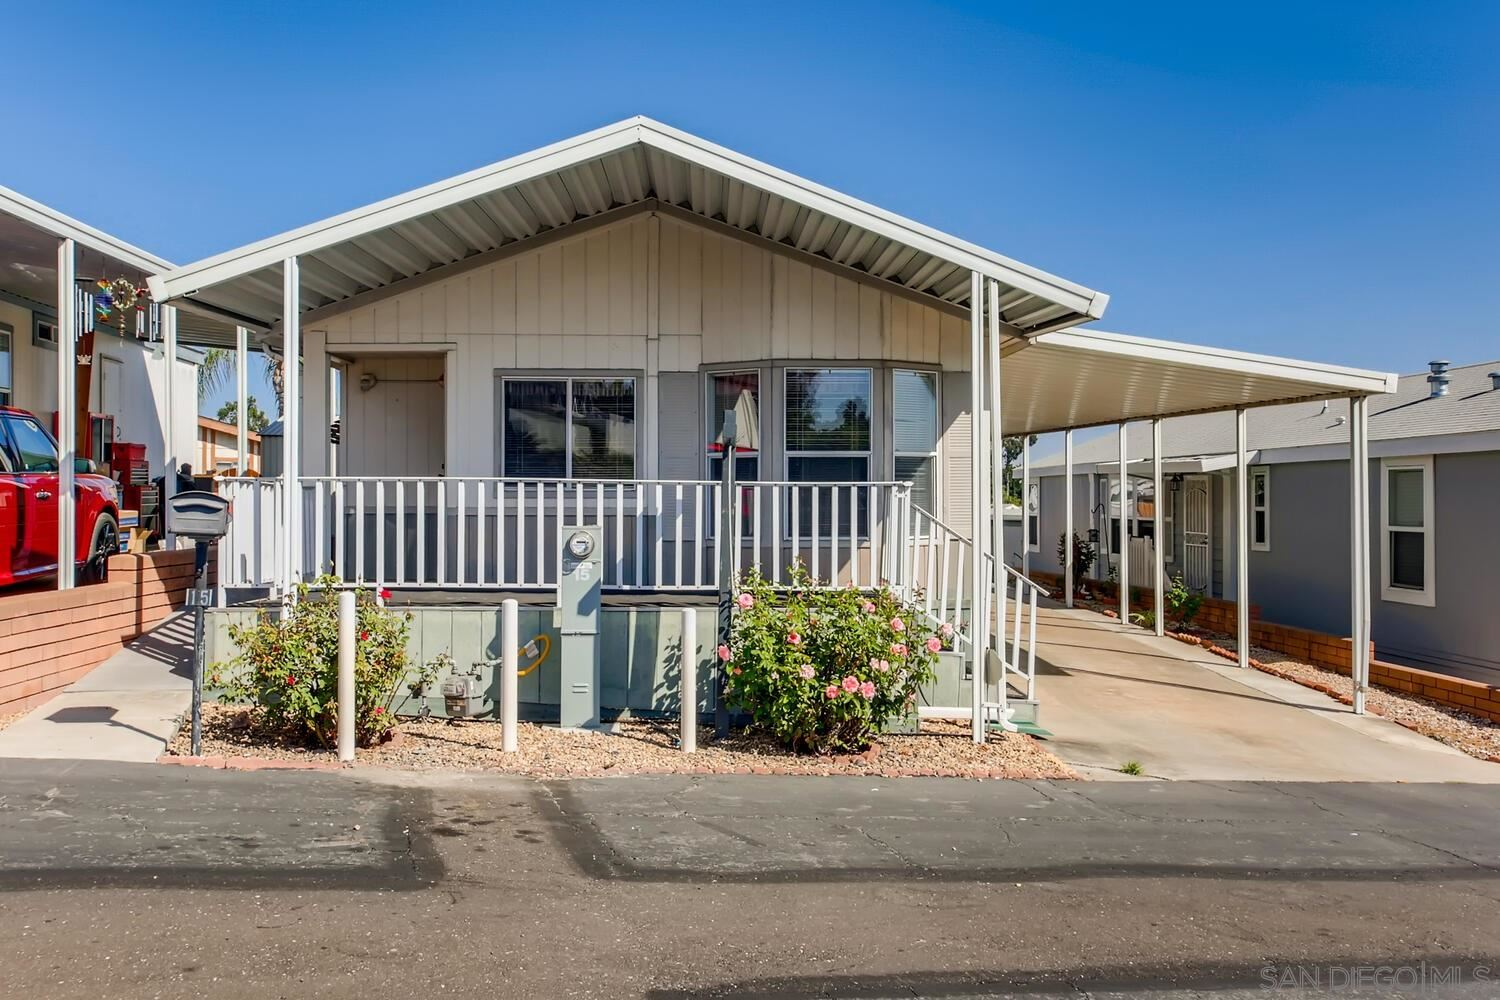 Photo of 245 W Bobier Drive #15, Vista, CA 92083 (MLS # 200043541)